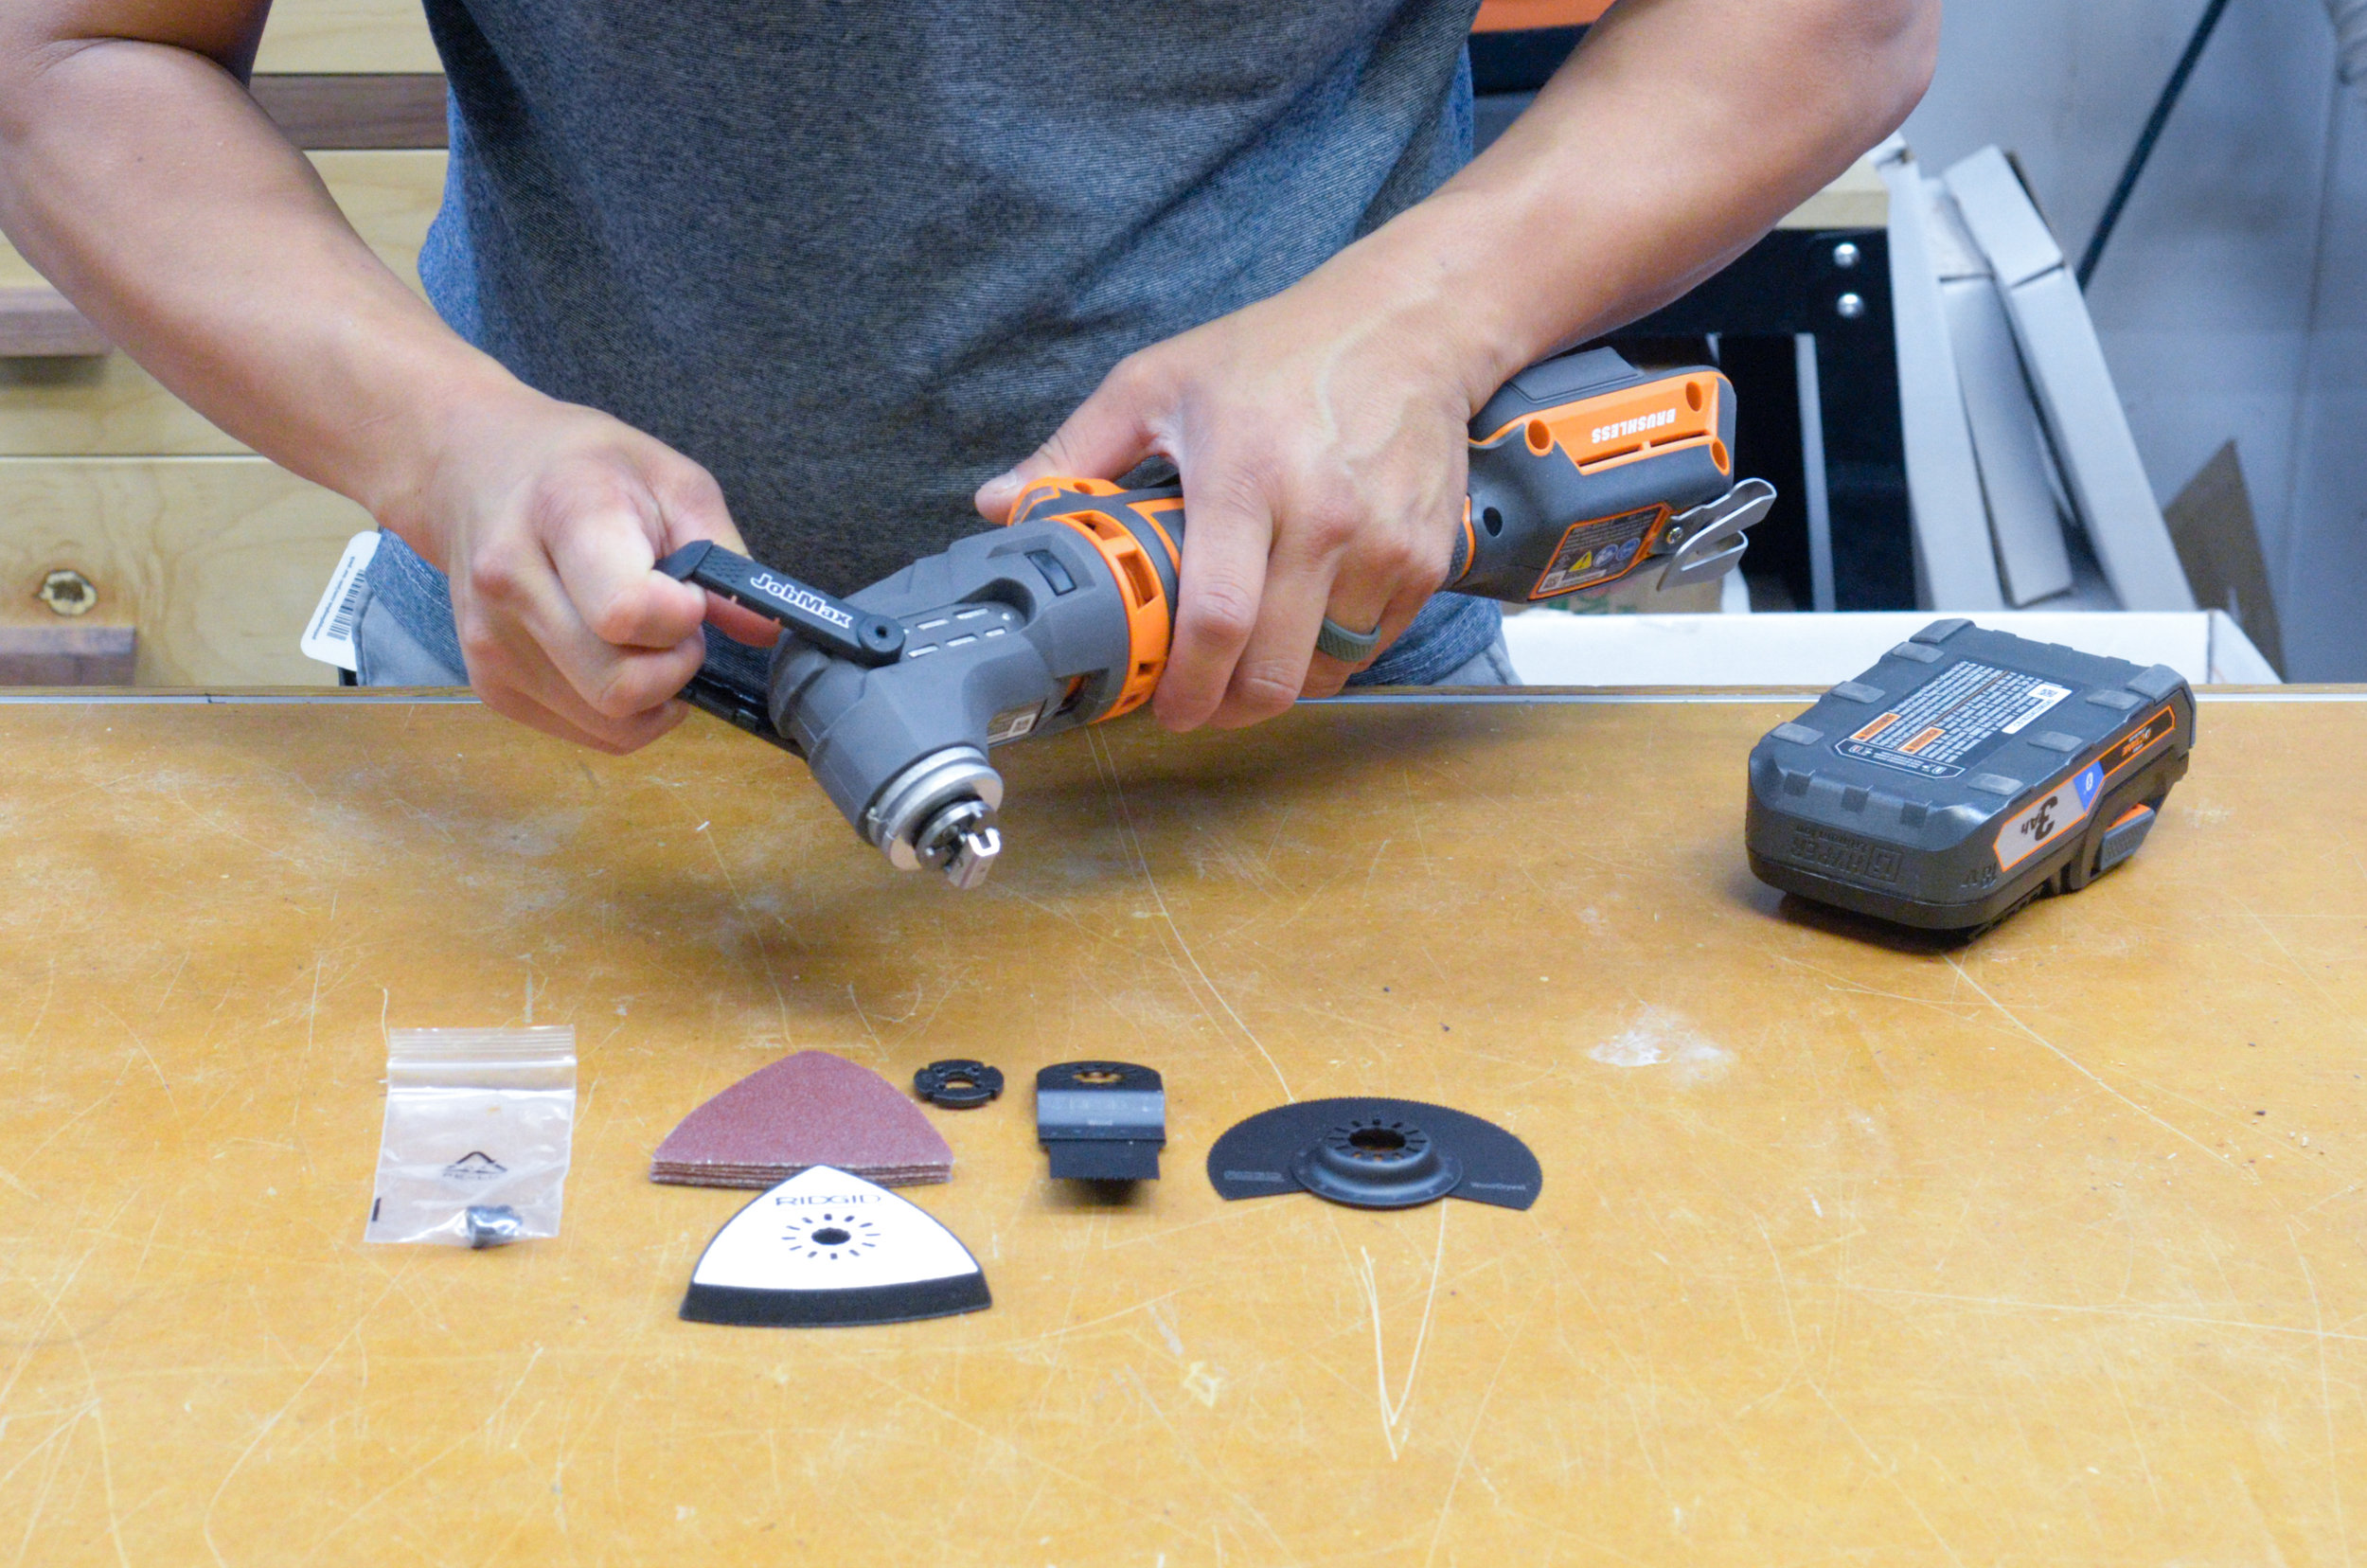 Easily swap out accessories by flipping the lever on the tool-free multi-head.